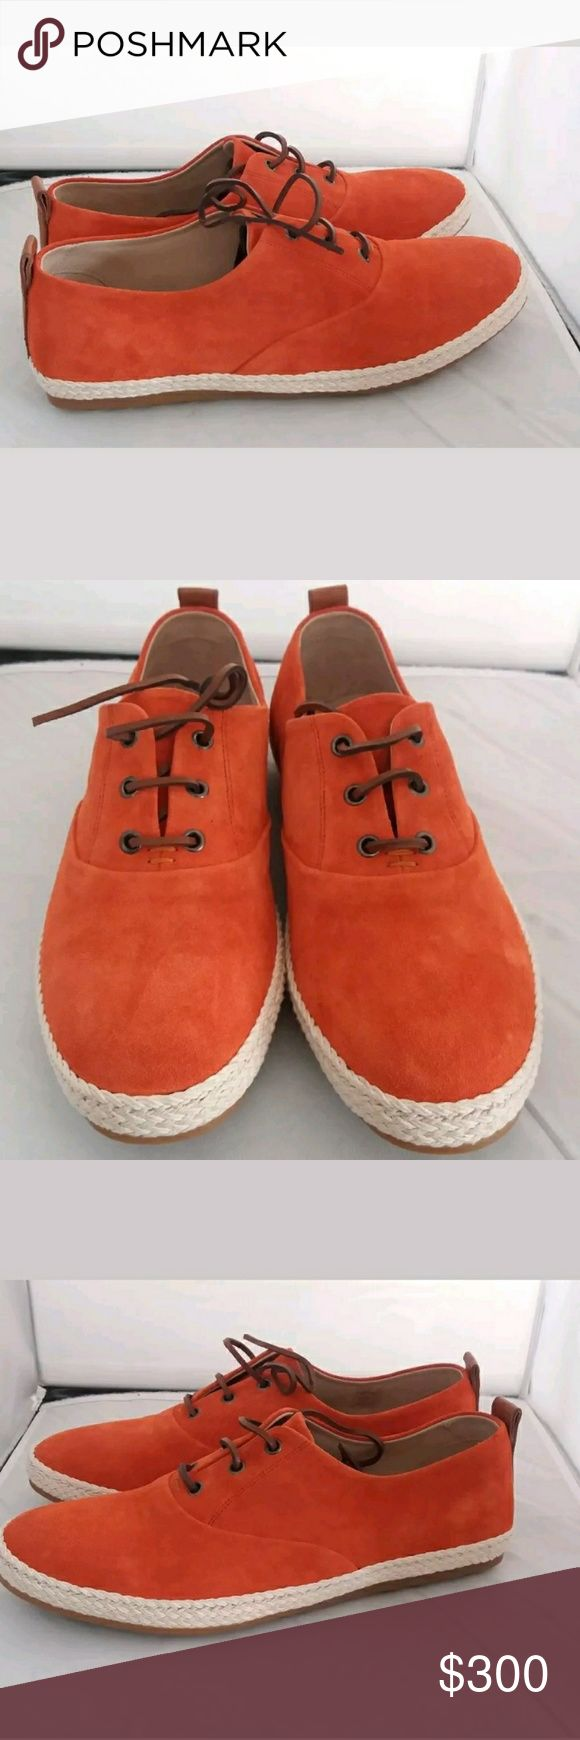 Sergio Rossi Espadrilles Mens Sz 7.5 Sergio Rossi Espadrilles Mens Sz 7.5. Brand new without box. Any questions please ask before purchase. Sergio Rossi Shoes Oxfords & Derbys #sergiorossishoes